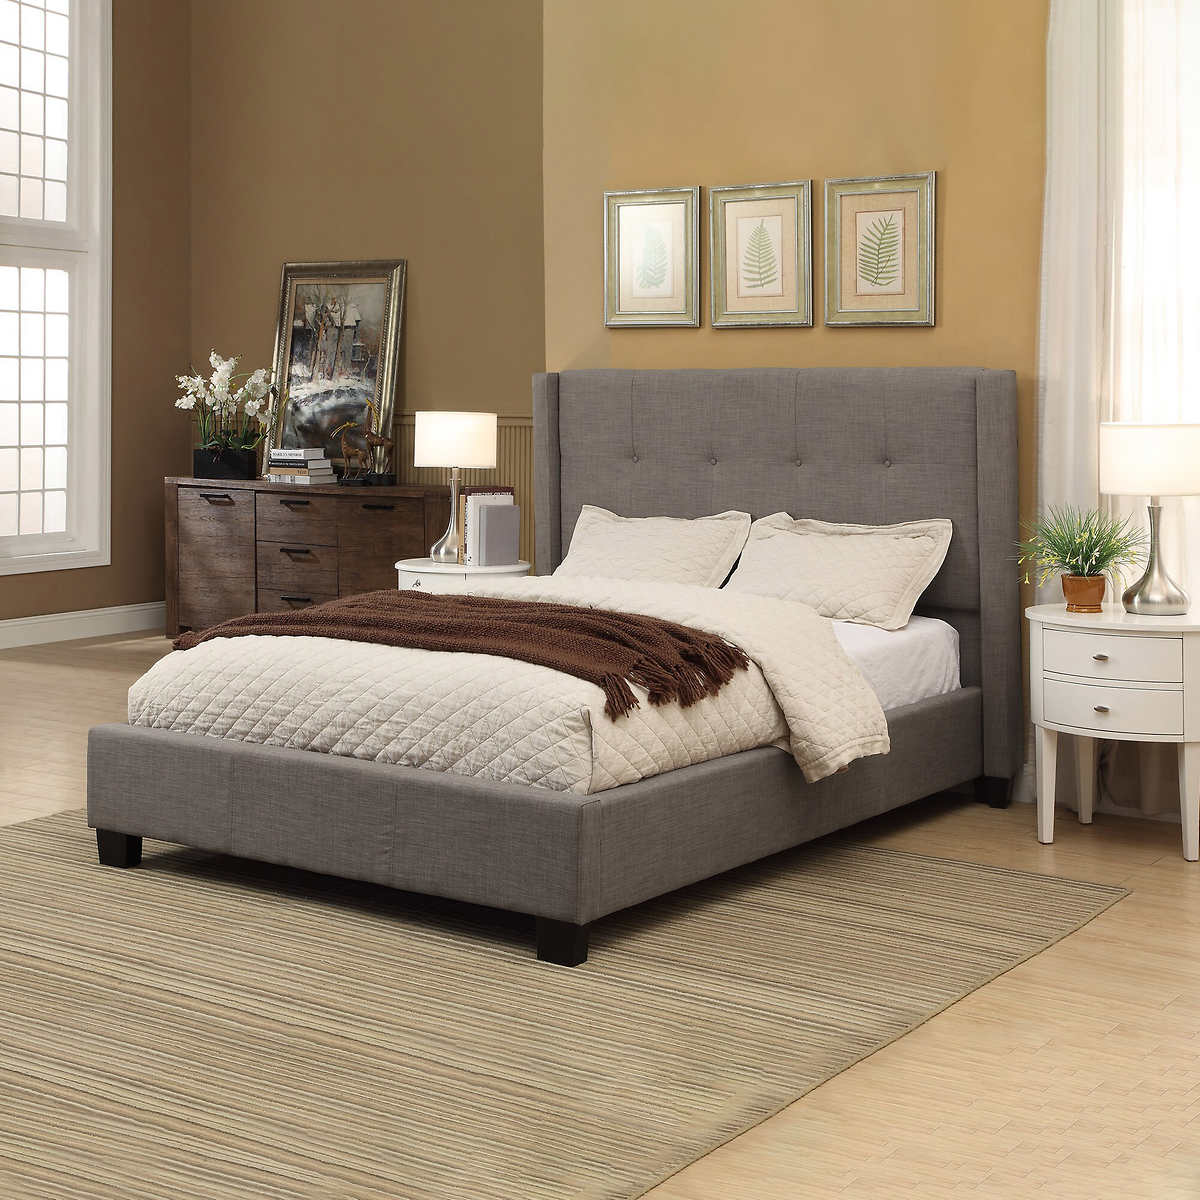 macallister cal king upholstered bed